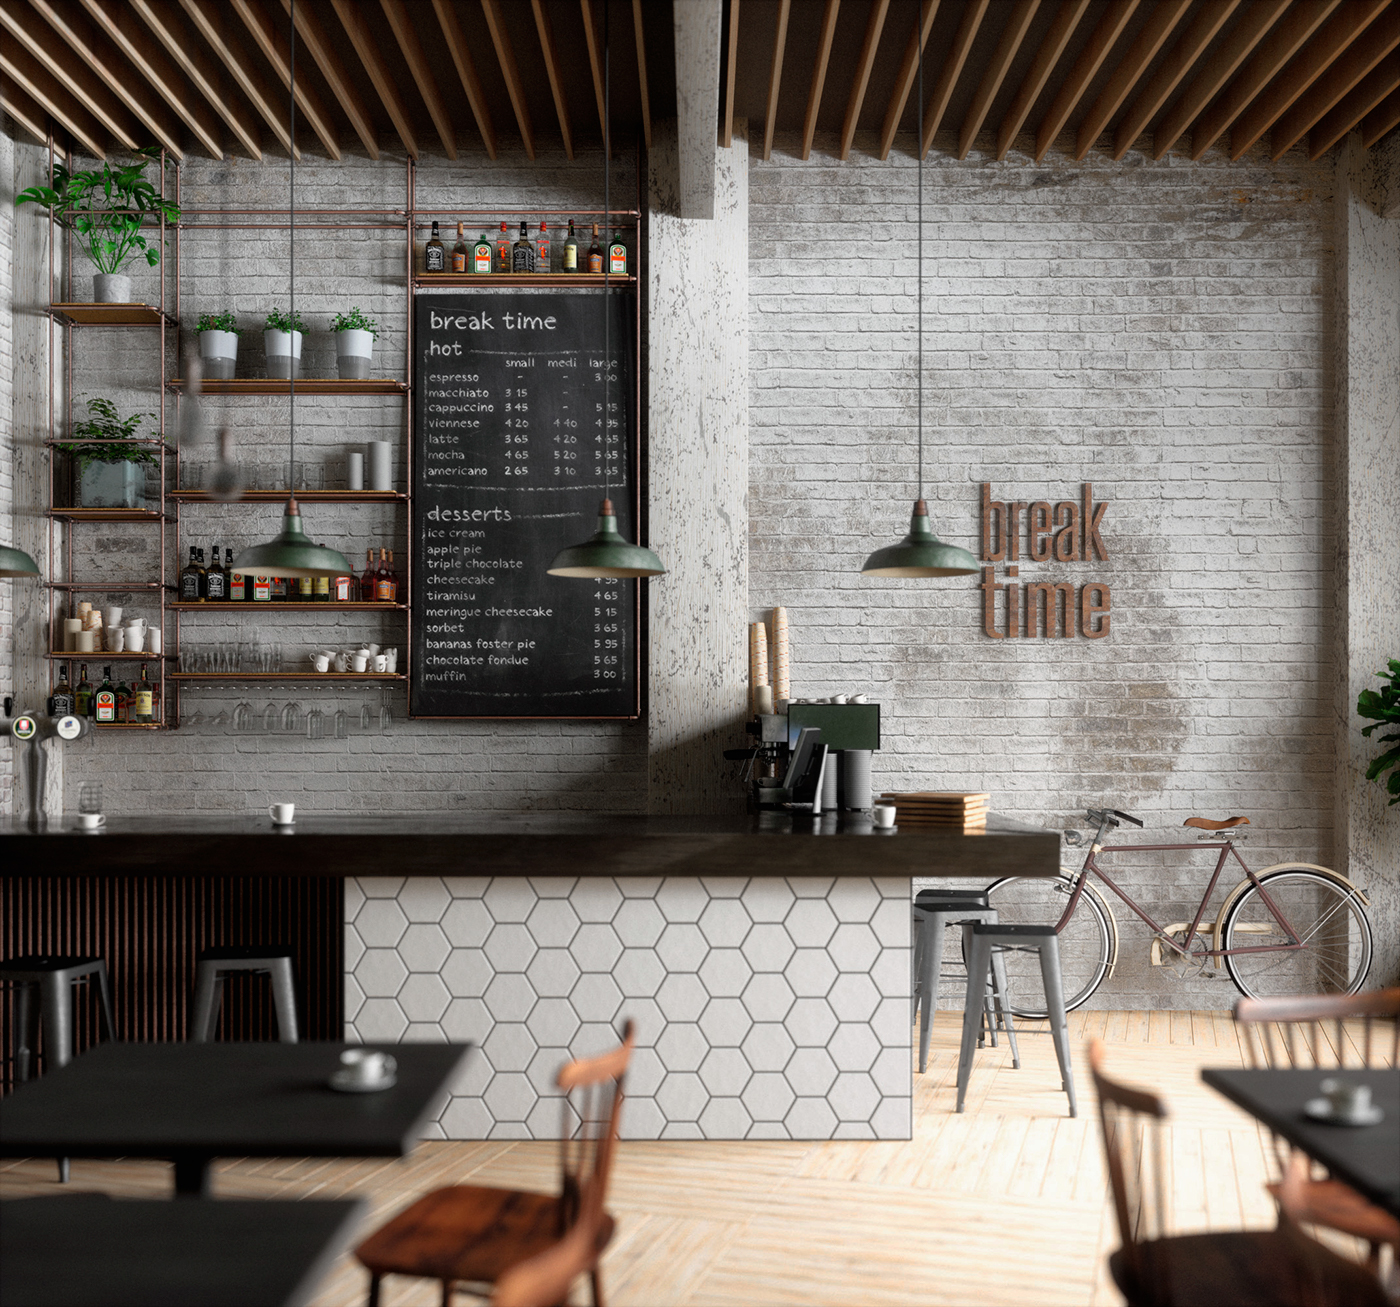 Shop Interior Design: 25 Best Coffee Shop Interior Designs From All Over The World